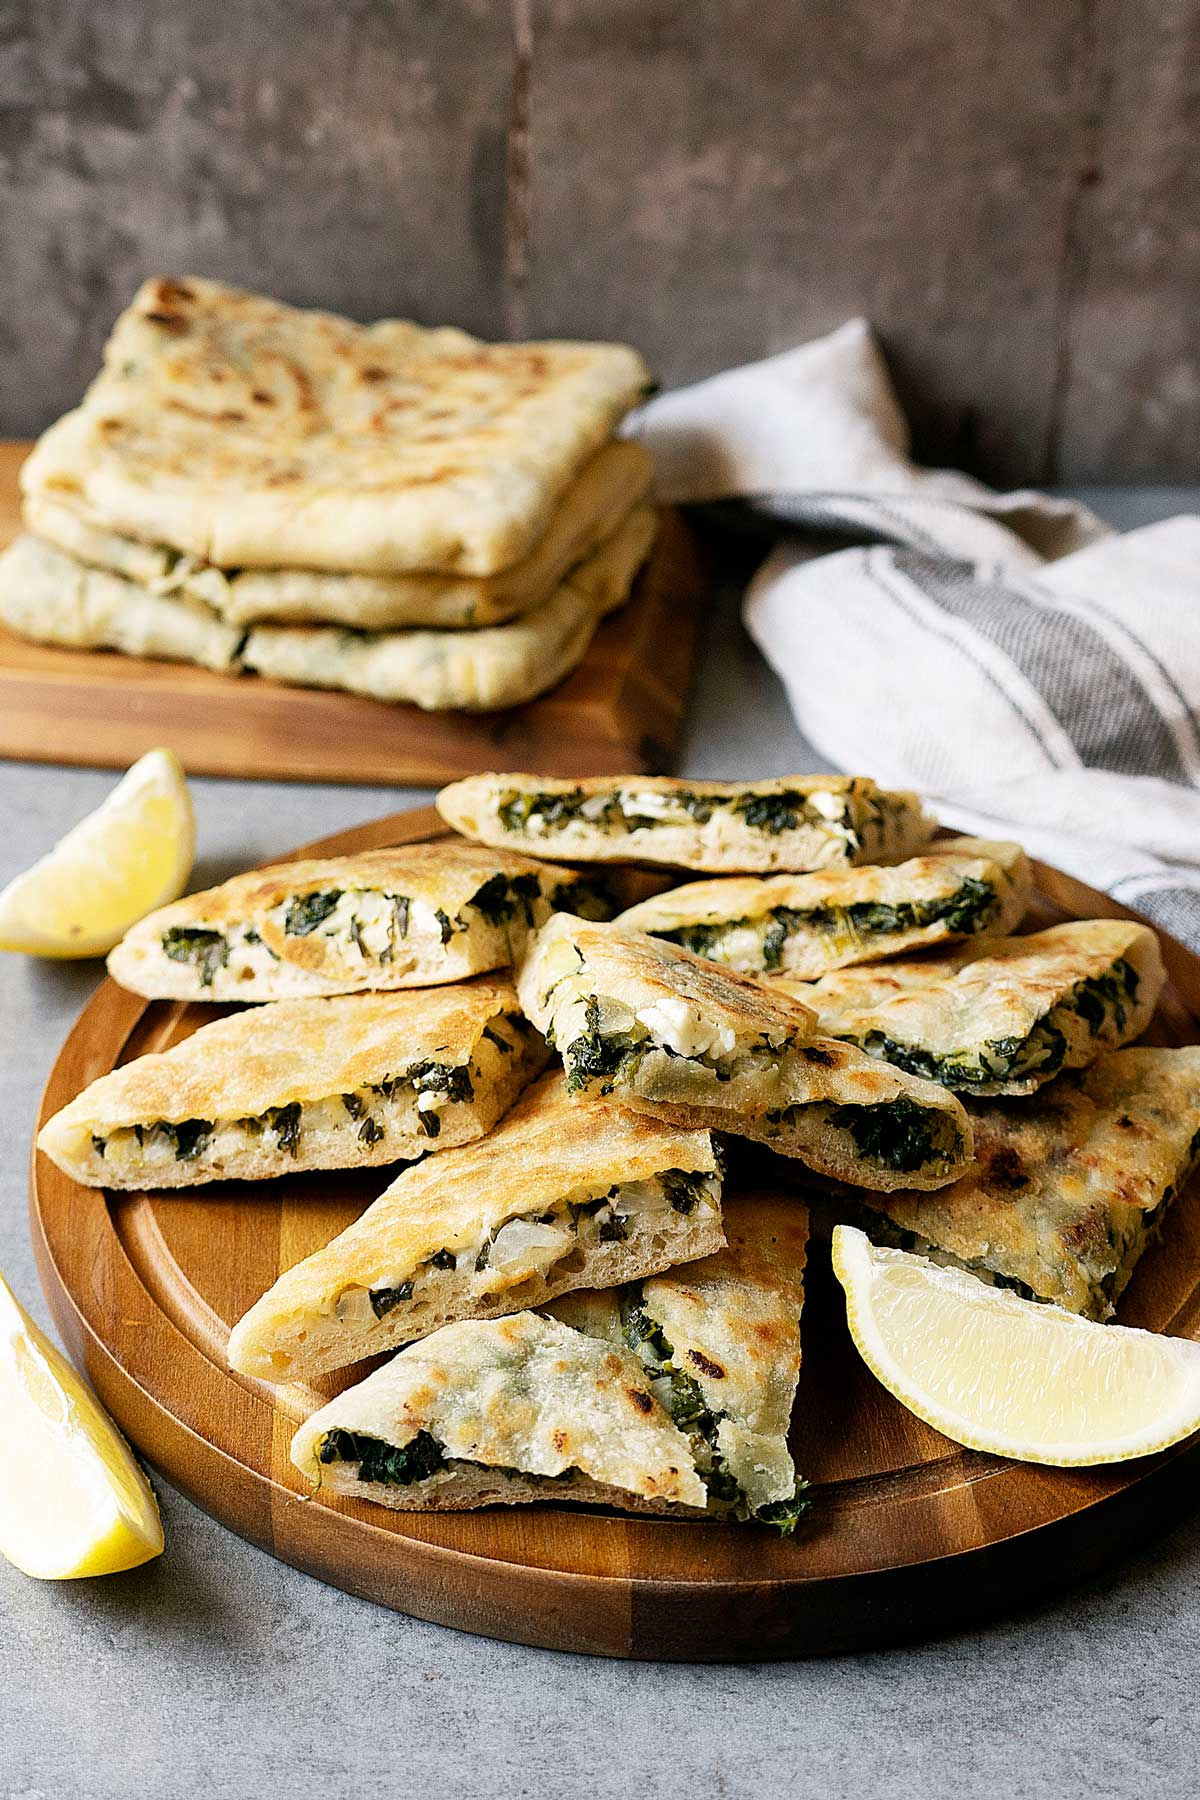 Some slices of spinach and feta gozleme on a wooden table with wedges on lemon